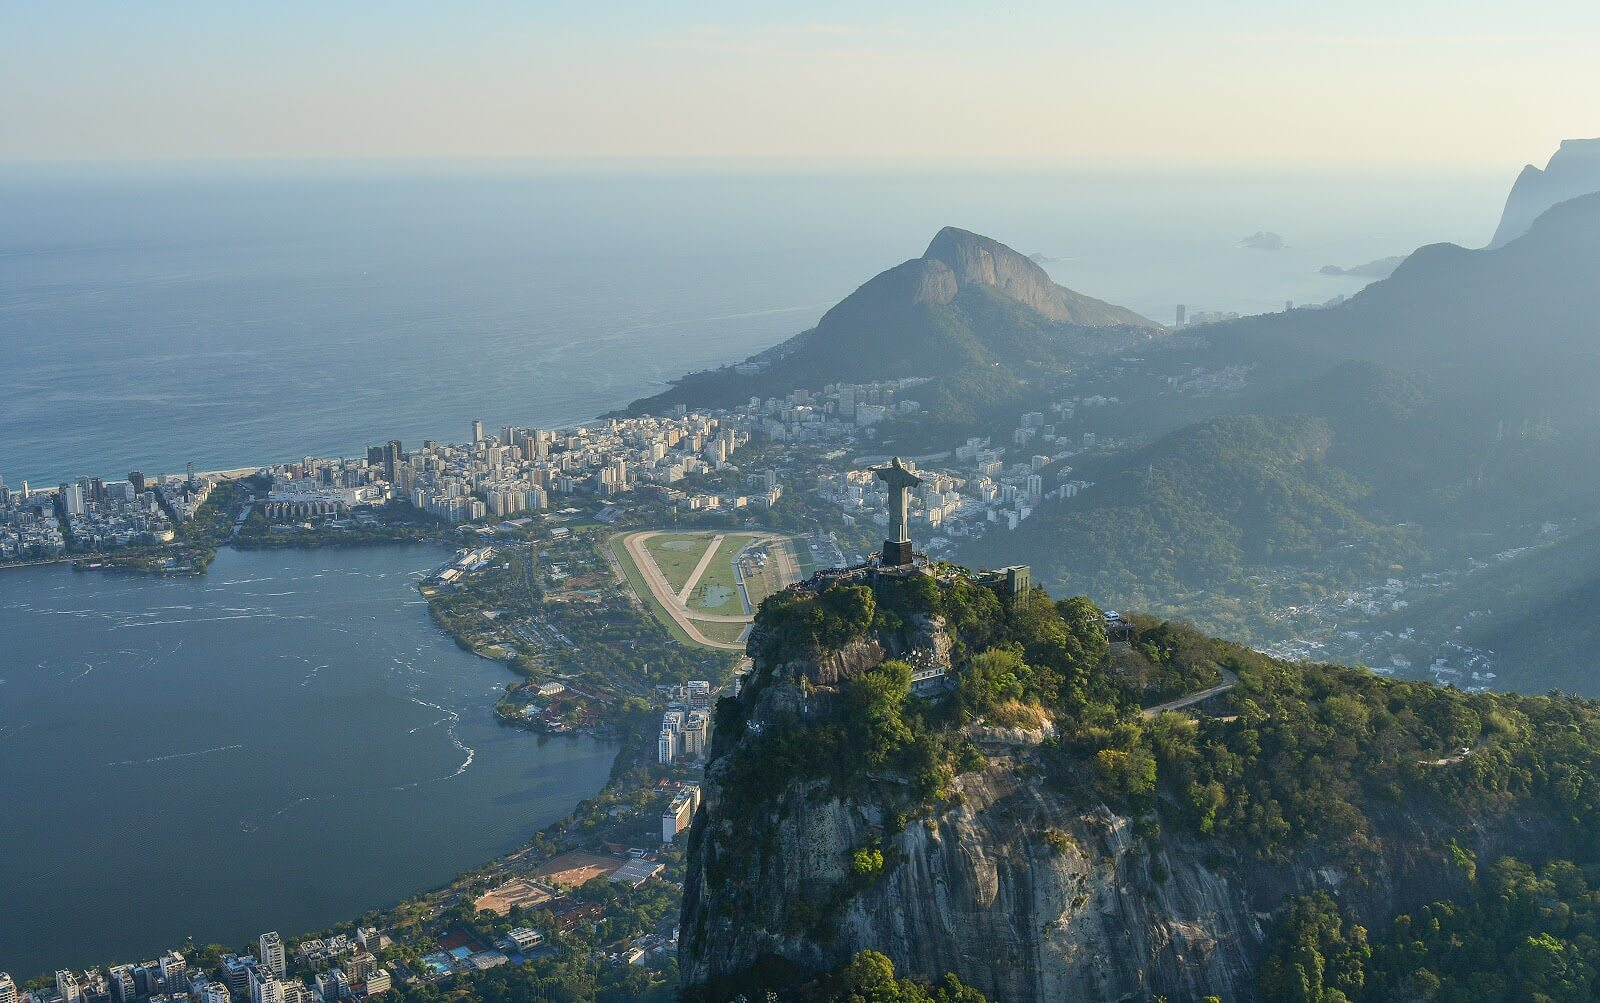 Brazil - Top 10 countries to outsource software and web development 2020